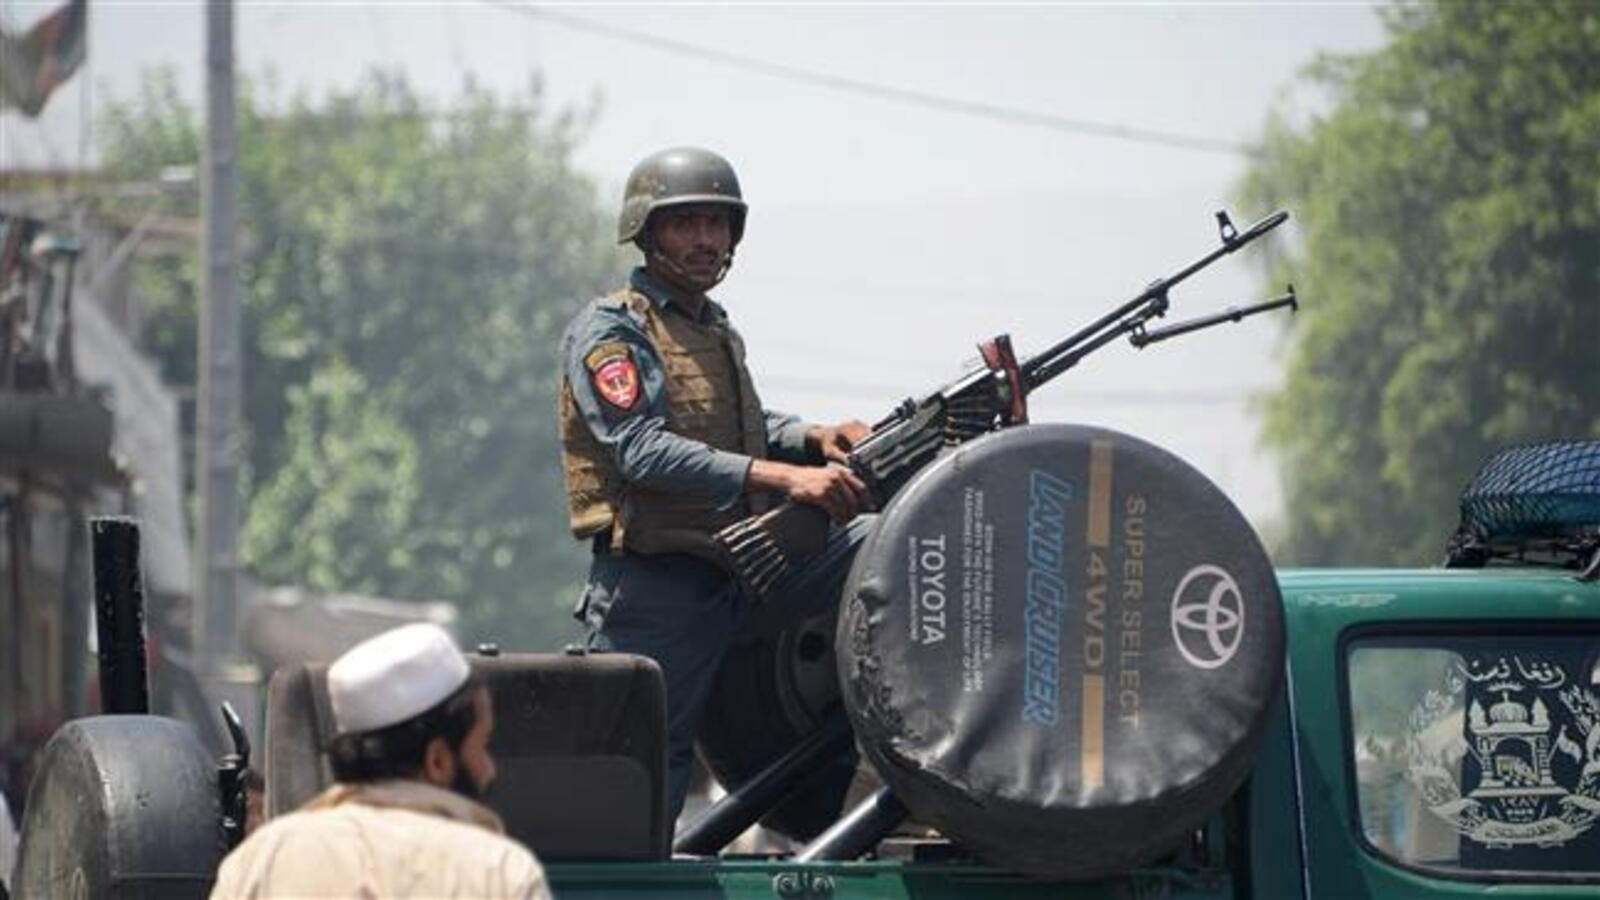 An Afghan soldier stands guard atop a vehicle near the site of an attack in Jalalabad on July 31, 2018. (AFP/ File photo)